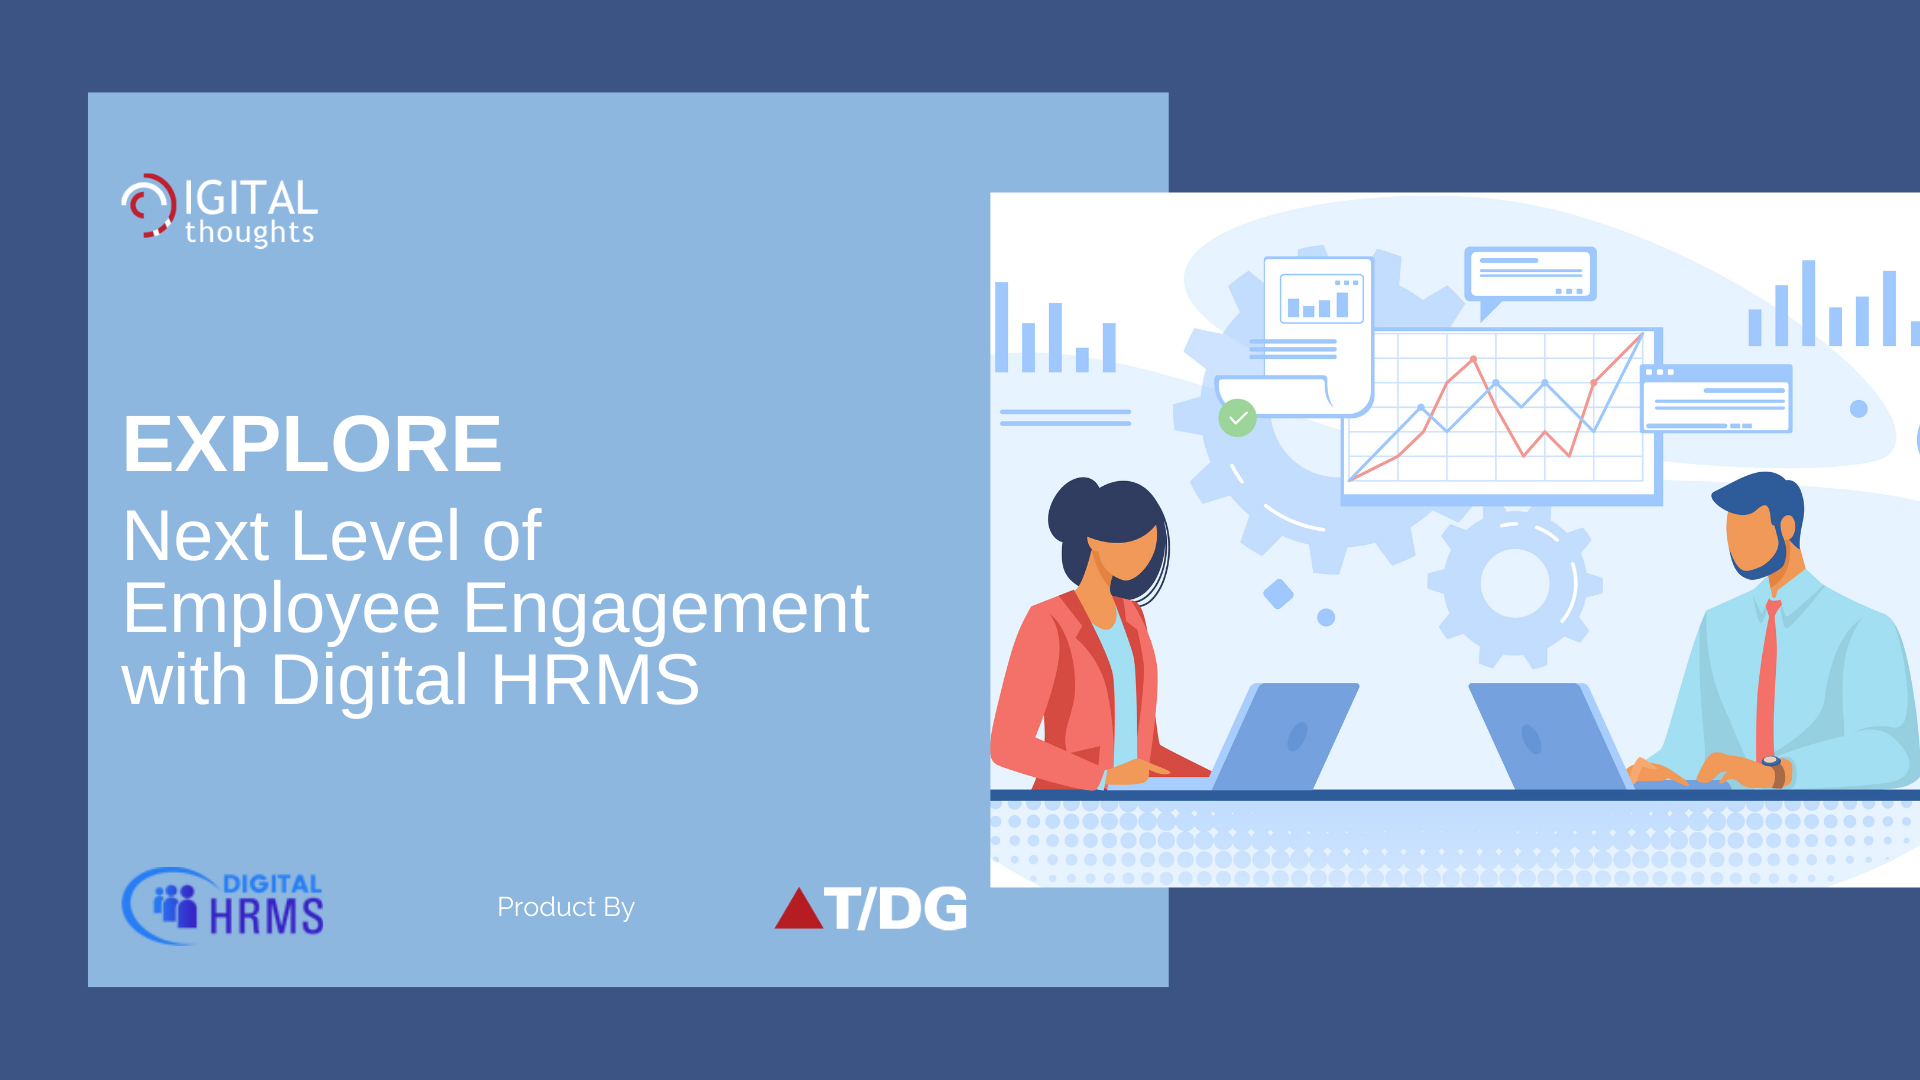 How Digital HRMS is Key to Employee Engagement